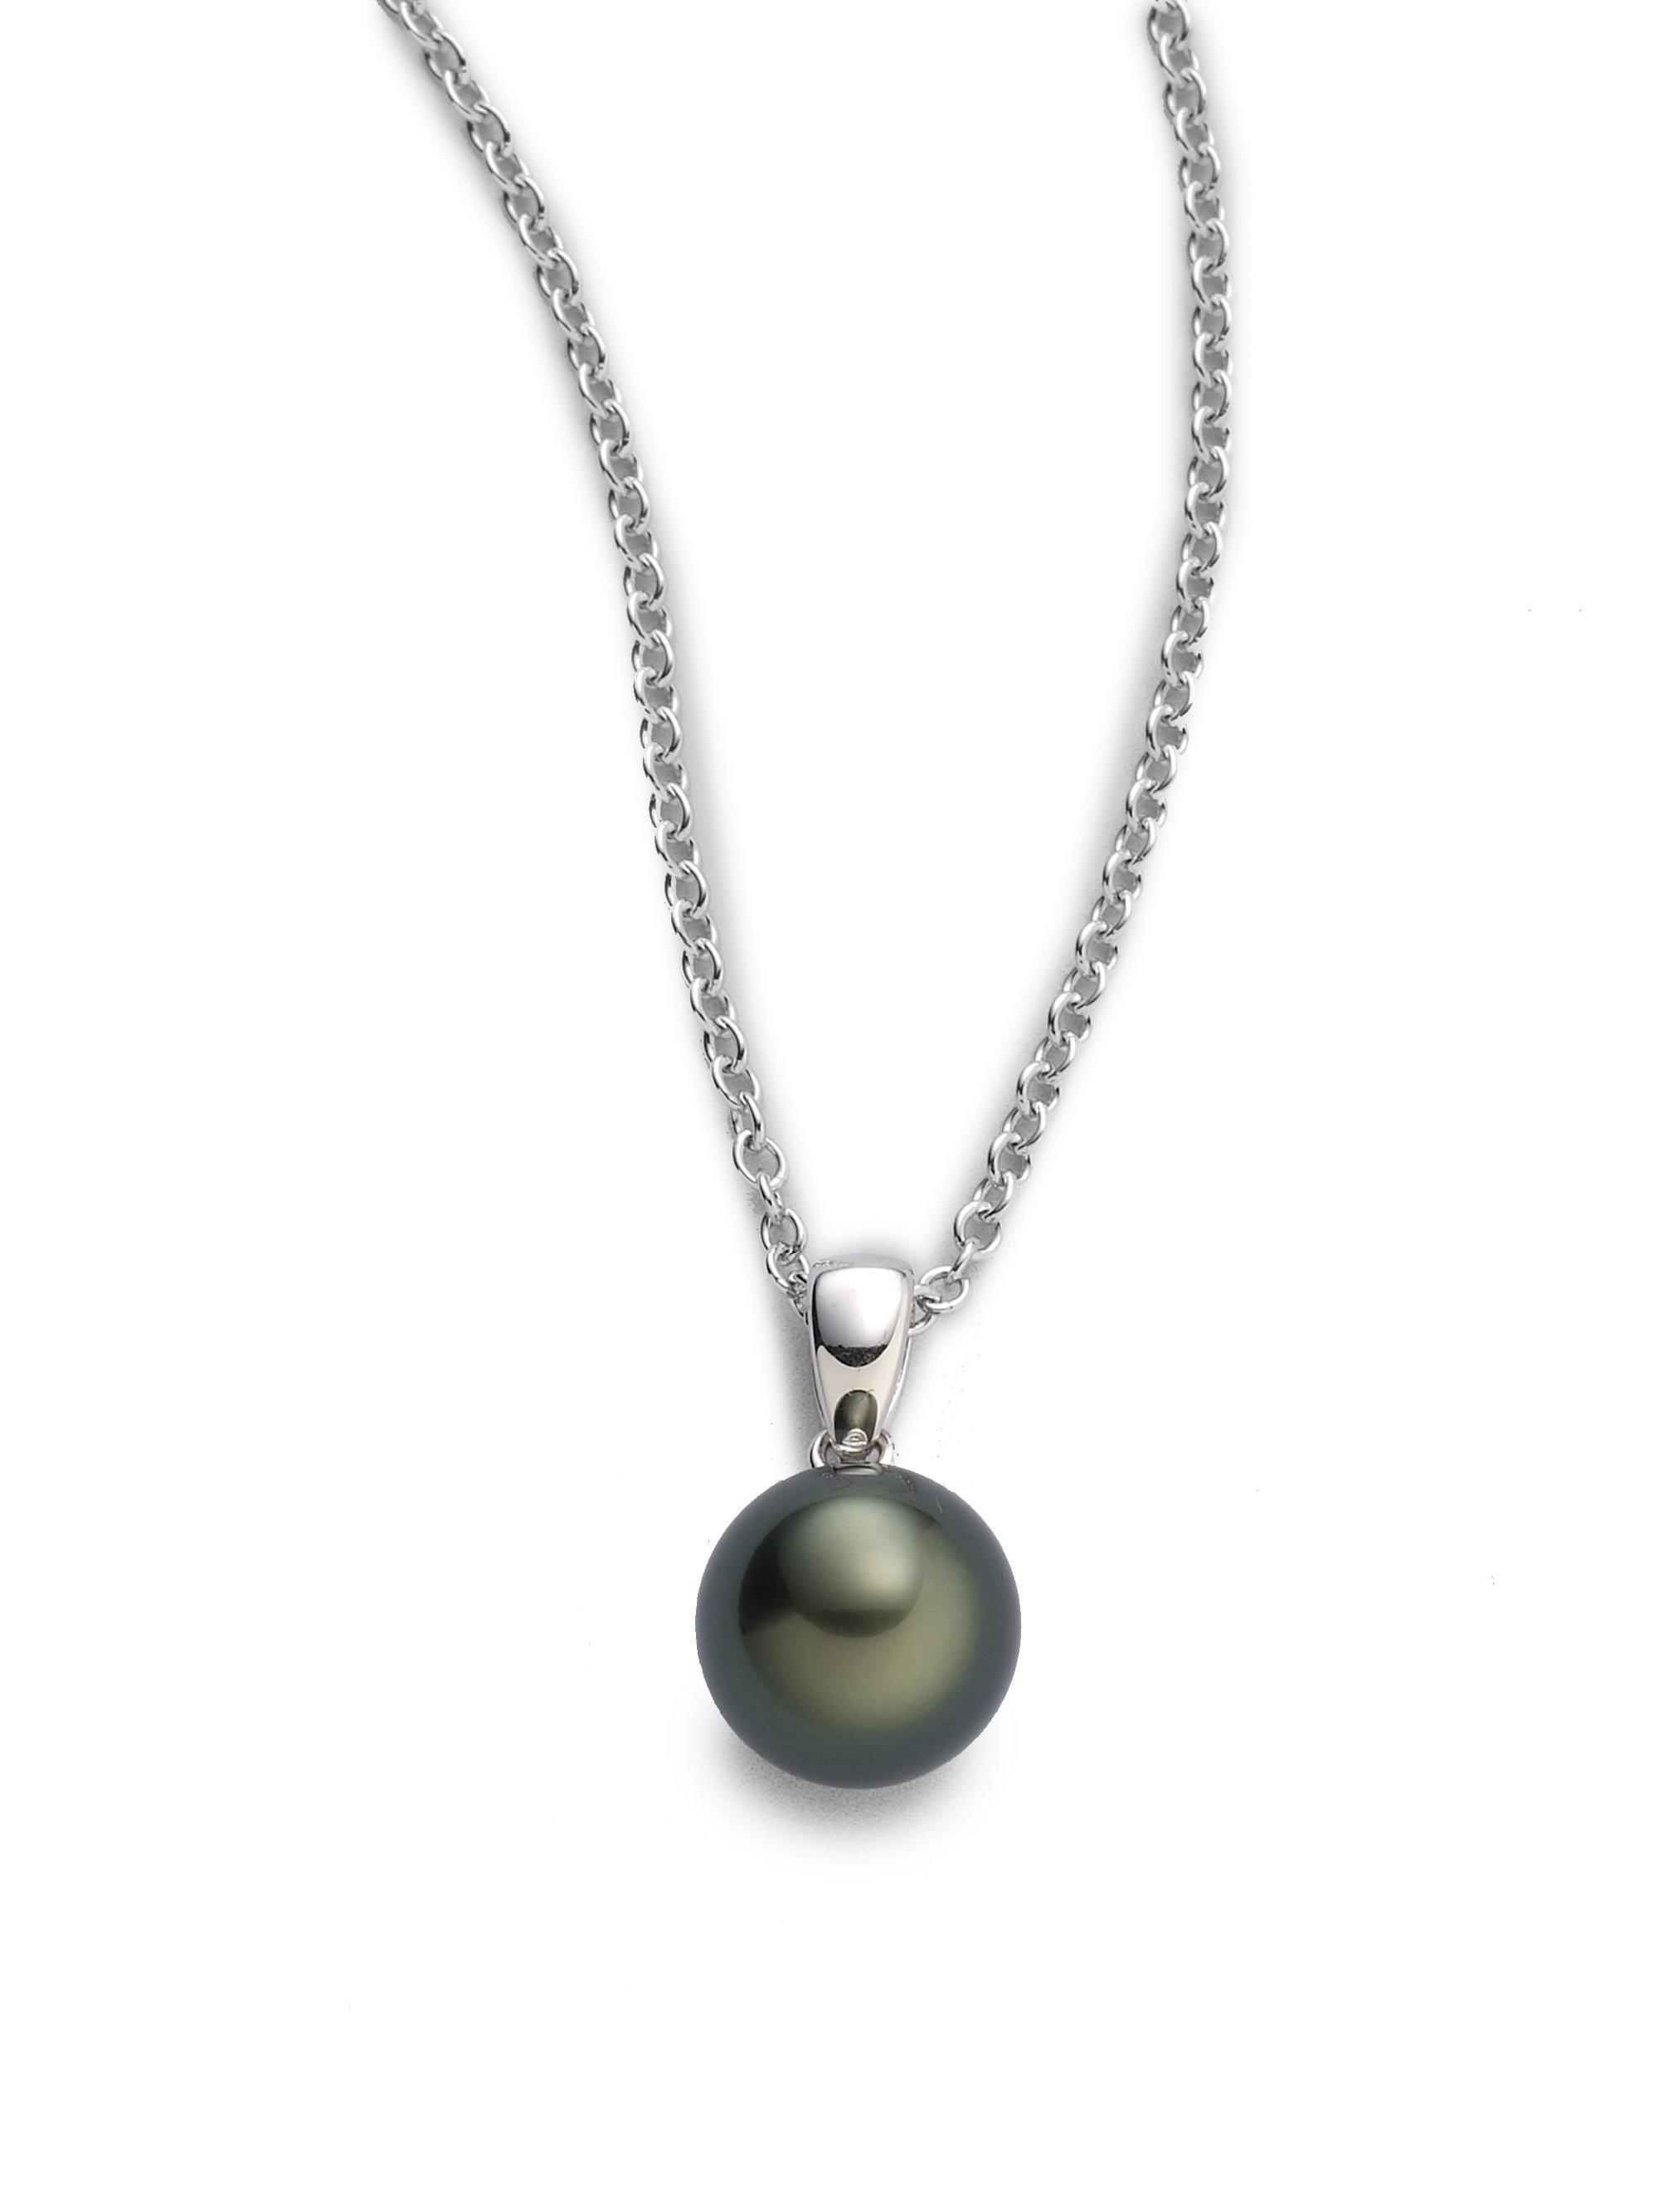 pearls mikimoto diamonds this baroques south necklace multi cultured black colored features breathtaking pearl with pendant pin new sea baroque and